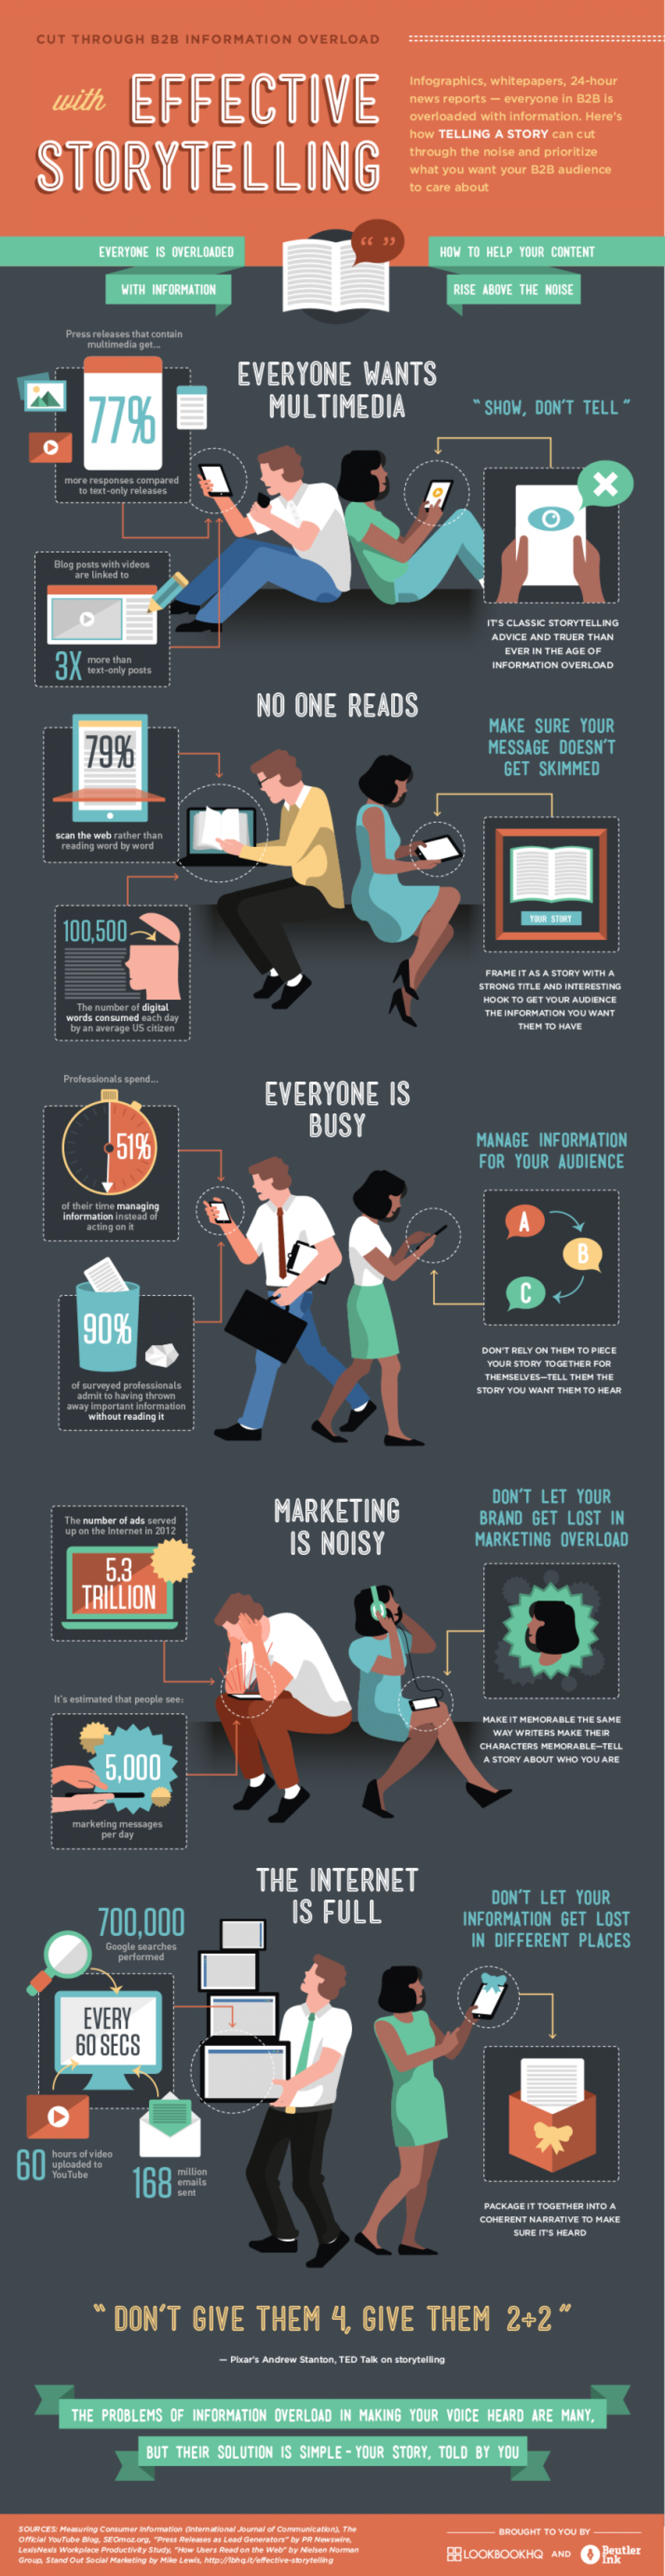 Effective Storytelling for B2B Infographic